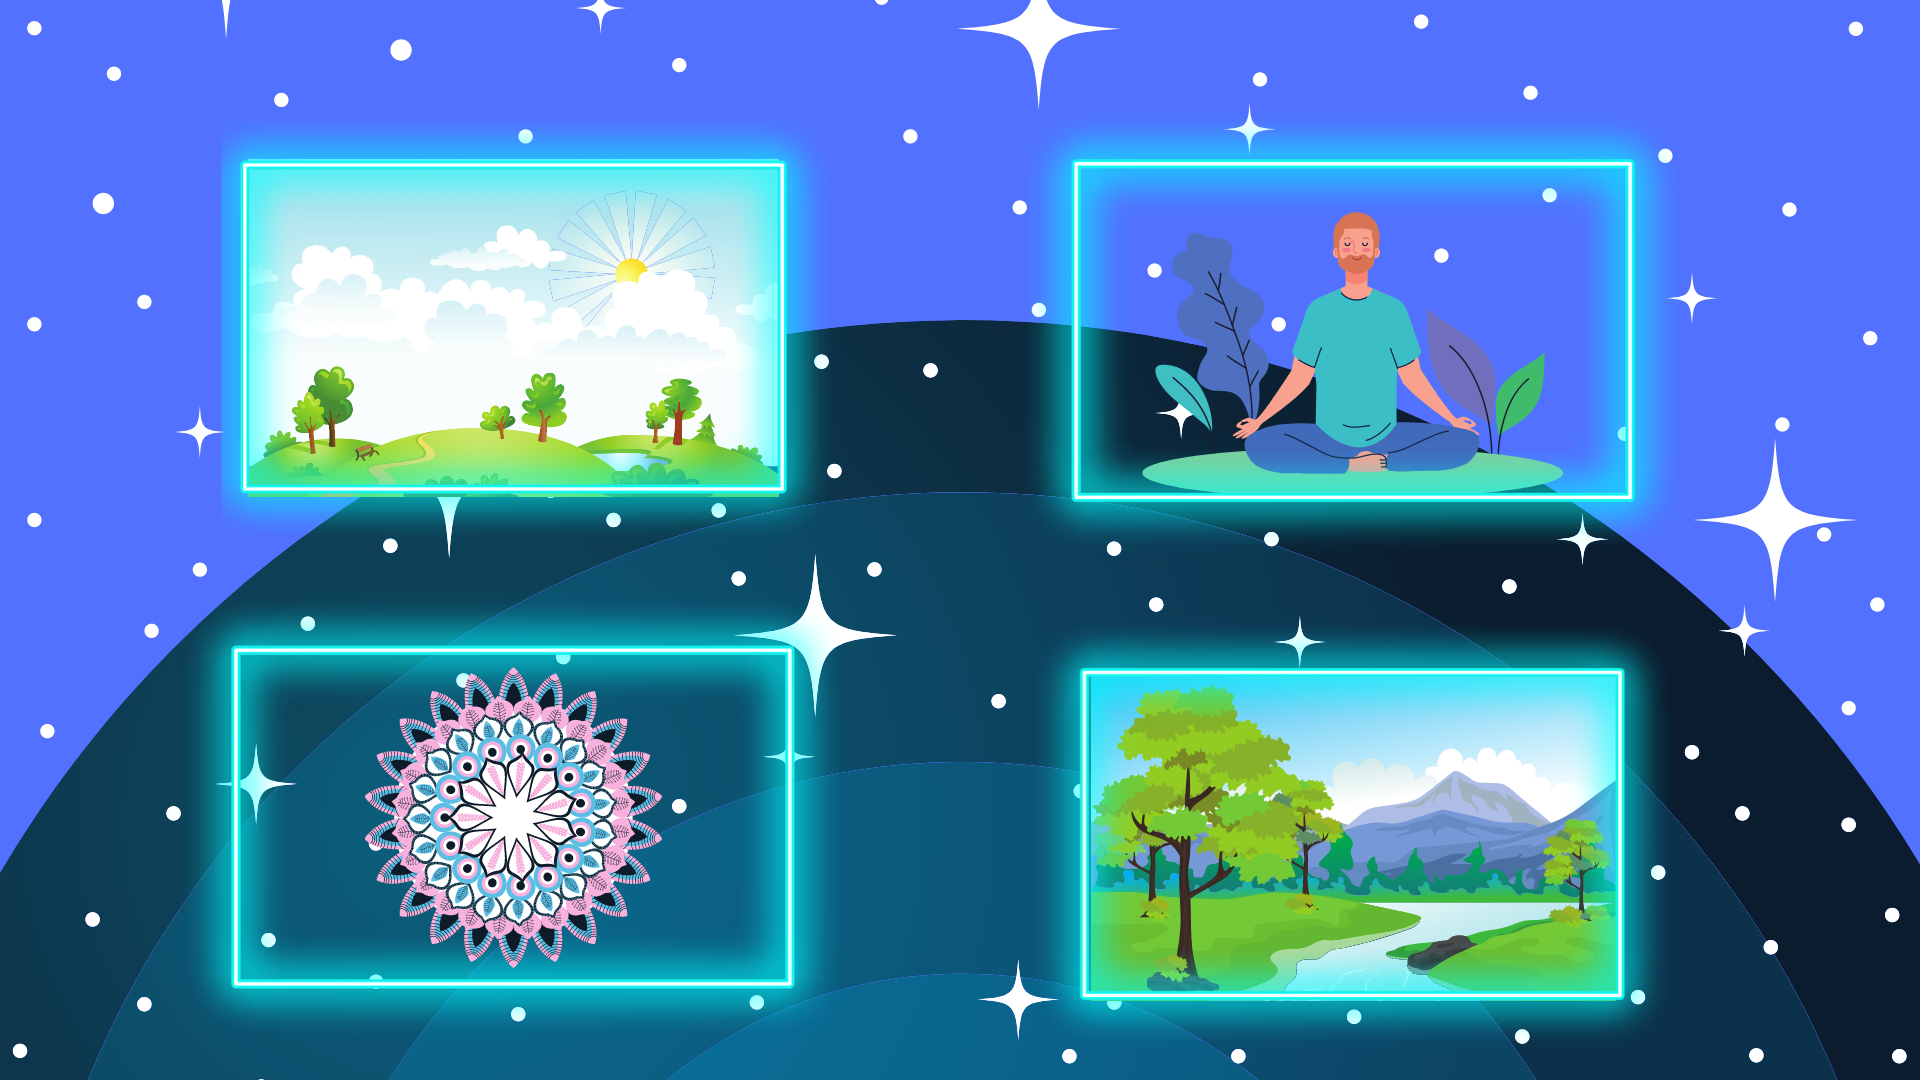 Four different neon squares with different pictures in them on a blue, semi-round background.